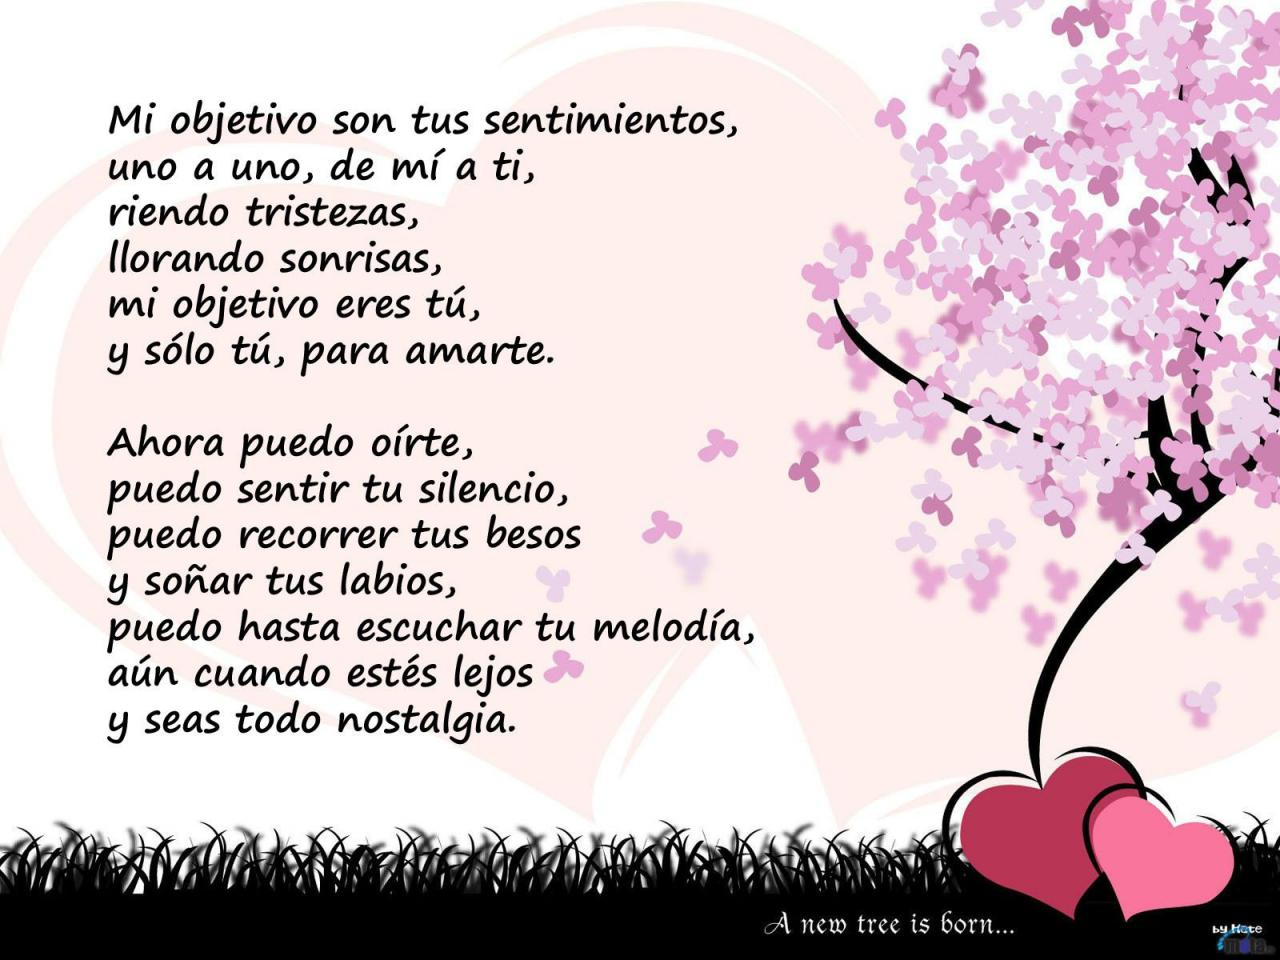 Valentines Day Quotes Poem For My Wife On Mothers Day Love Poem In Spanish Valentines